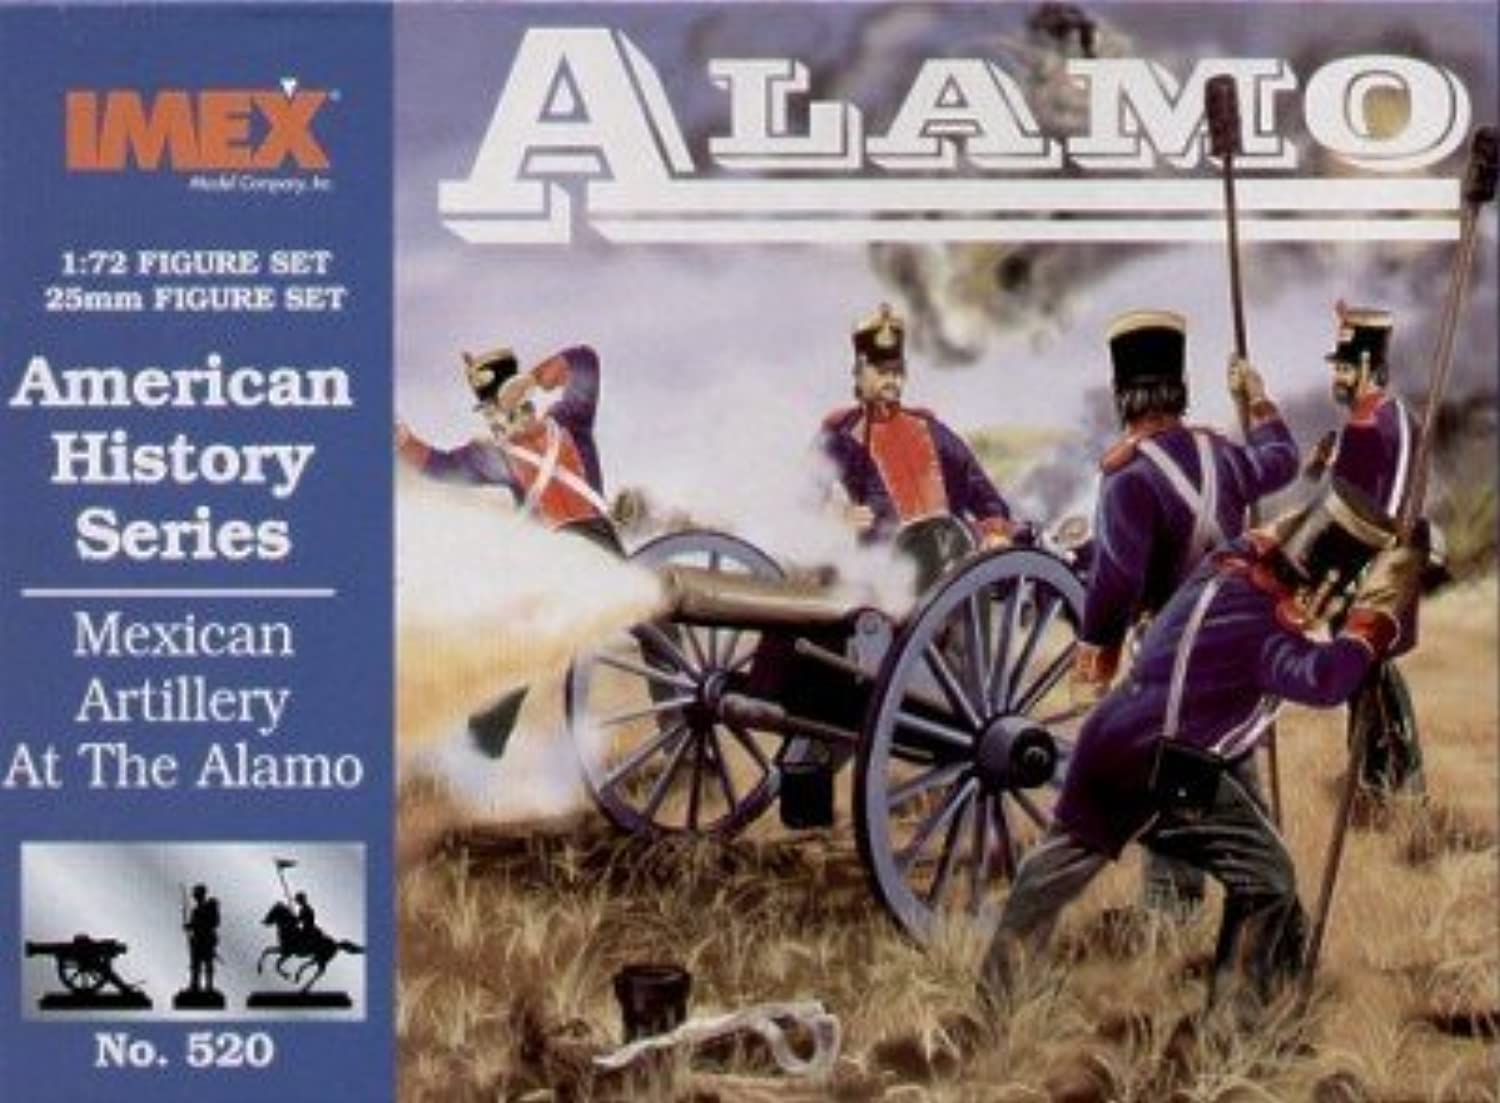 Mexican Artillery Alamo American History Figures Set 1 72 Imex by Imex